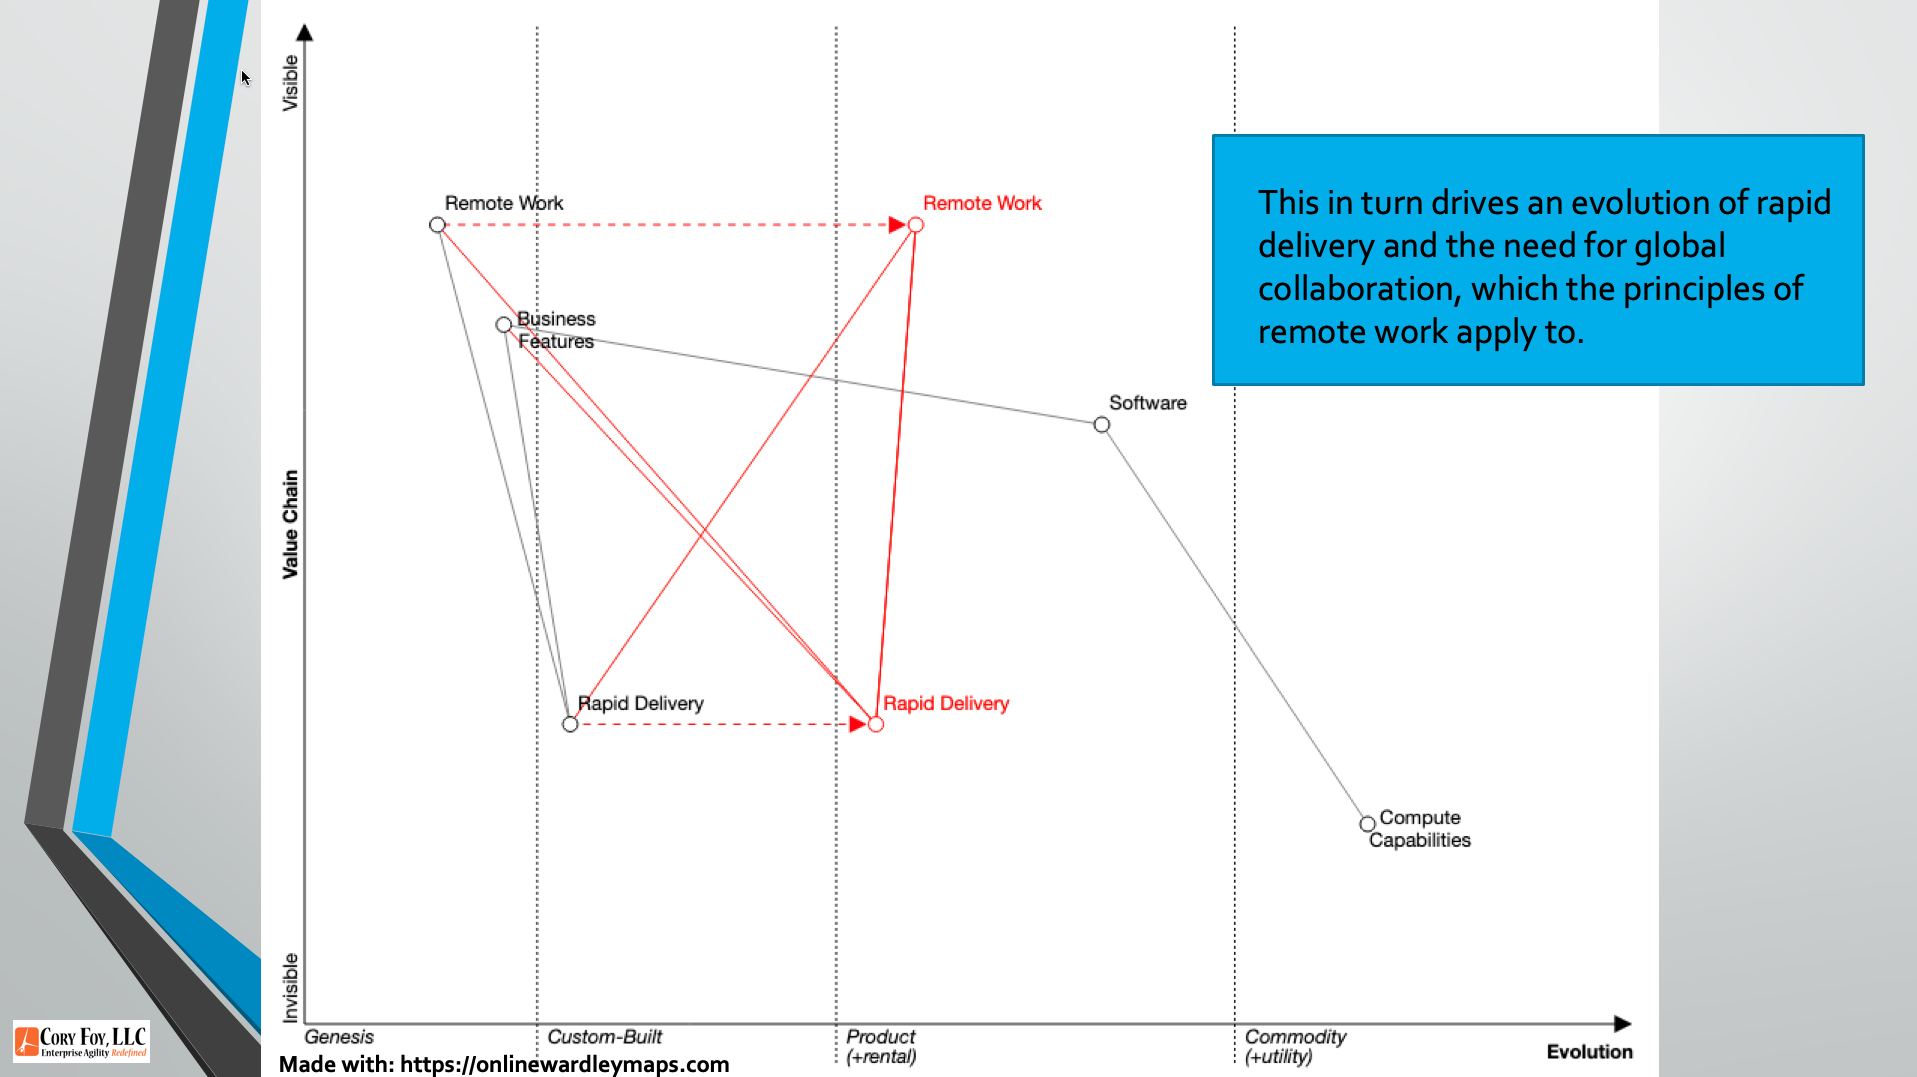 A wardley map showing remote work and rapid delivery evolving to be critical elements